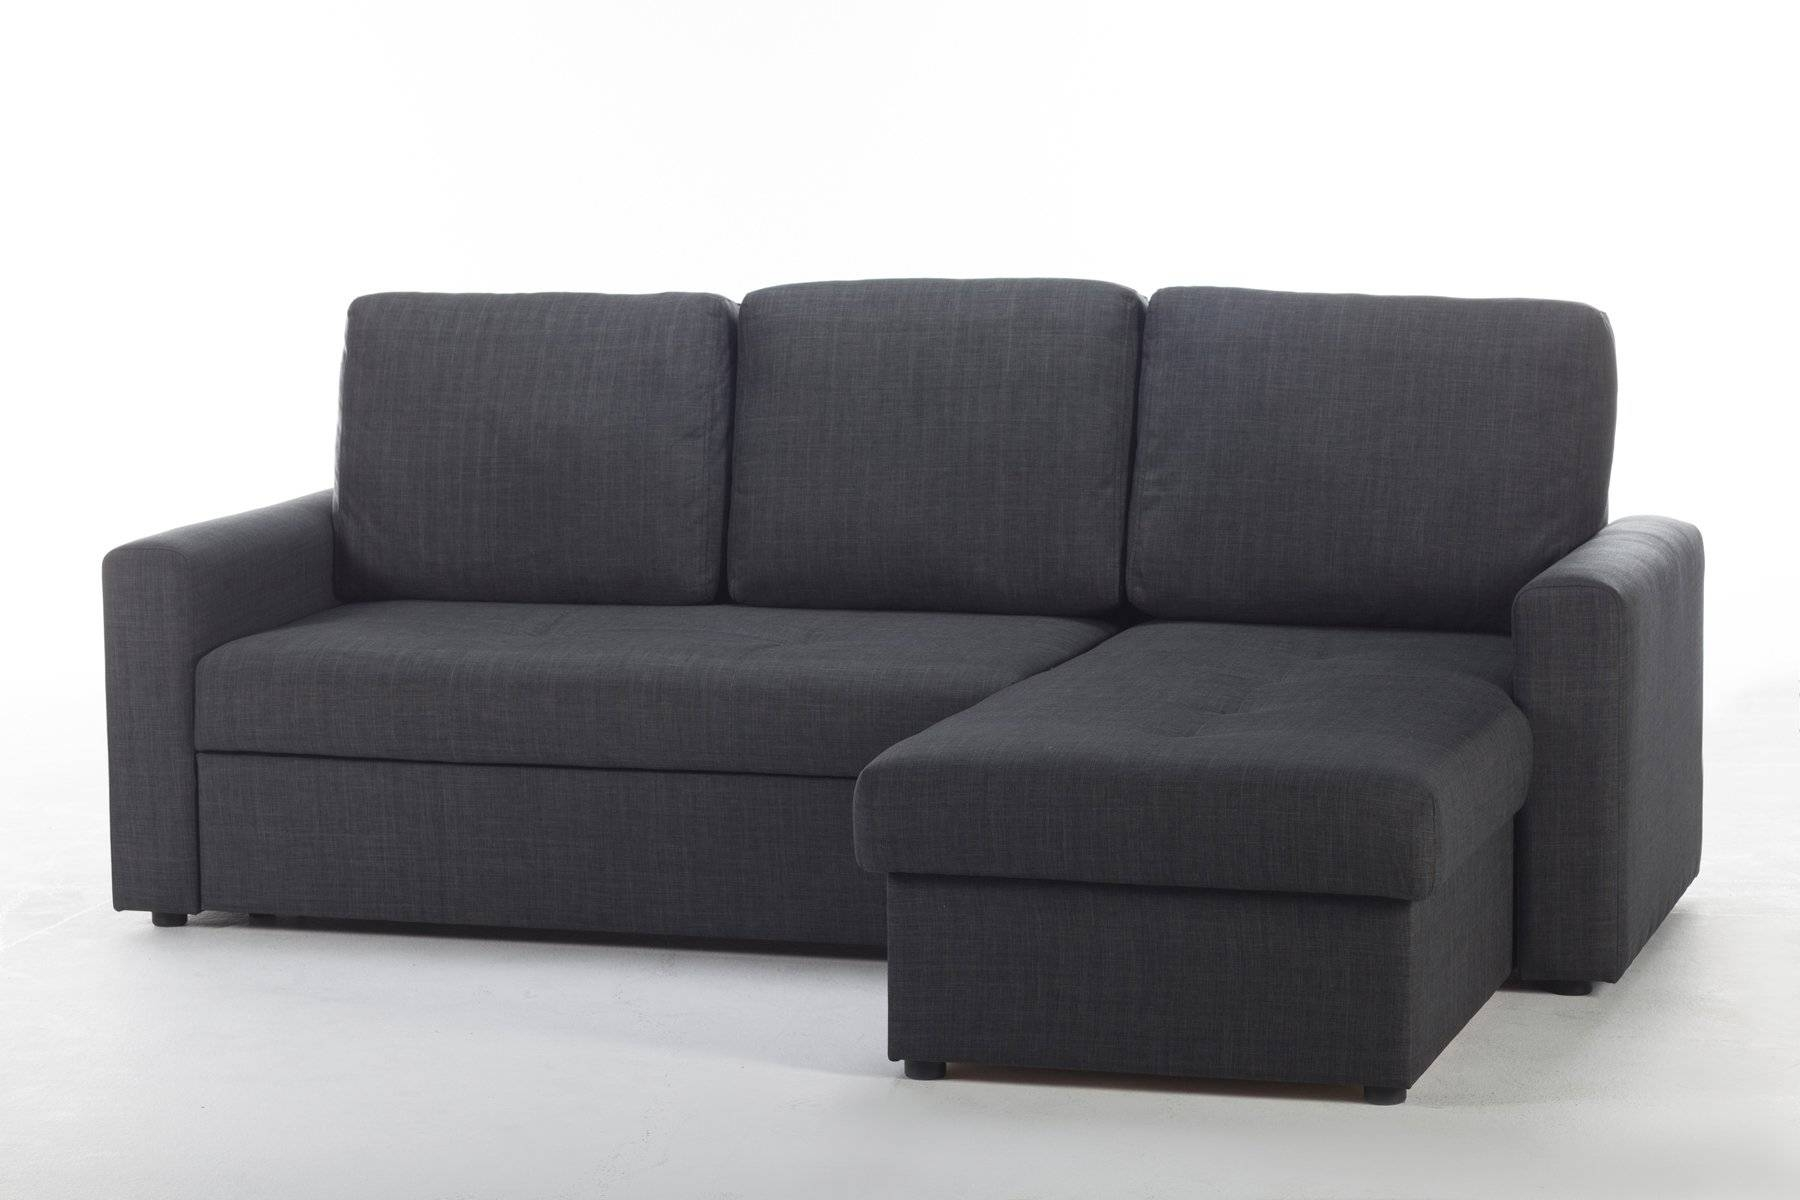 Fethiye Dark Grey Fabric Sectional Sofasunset inside Cloth Sectional Sofas (Image 10 of 30)